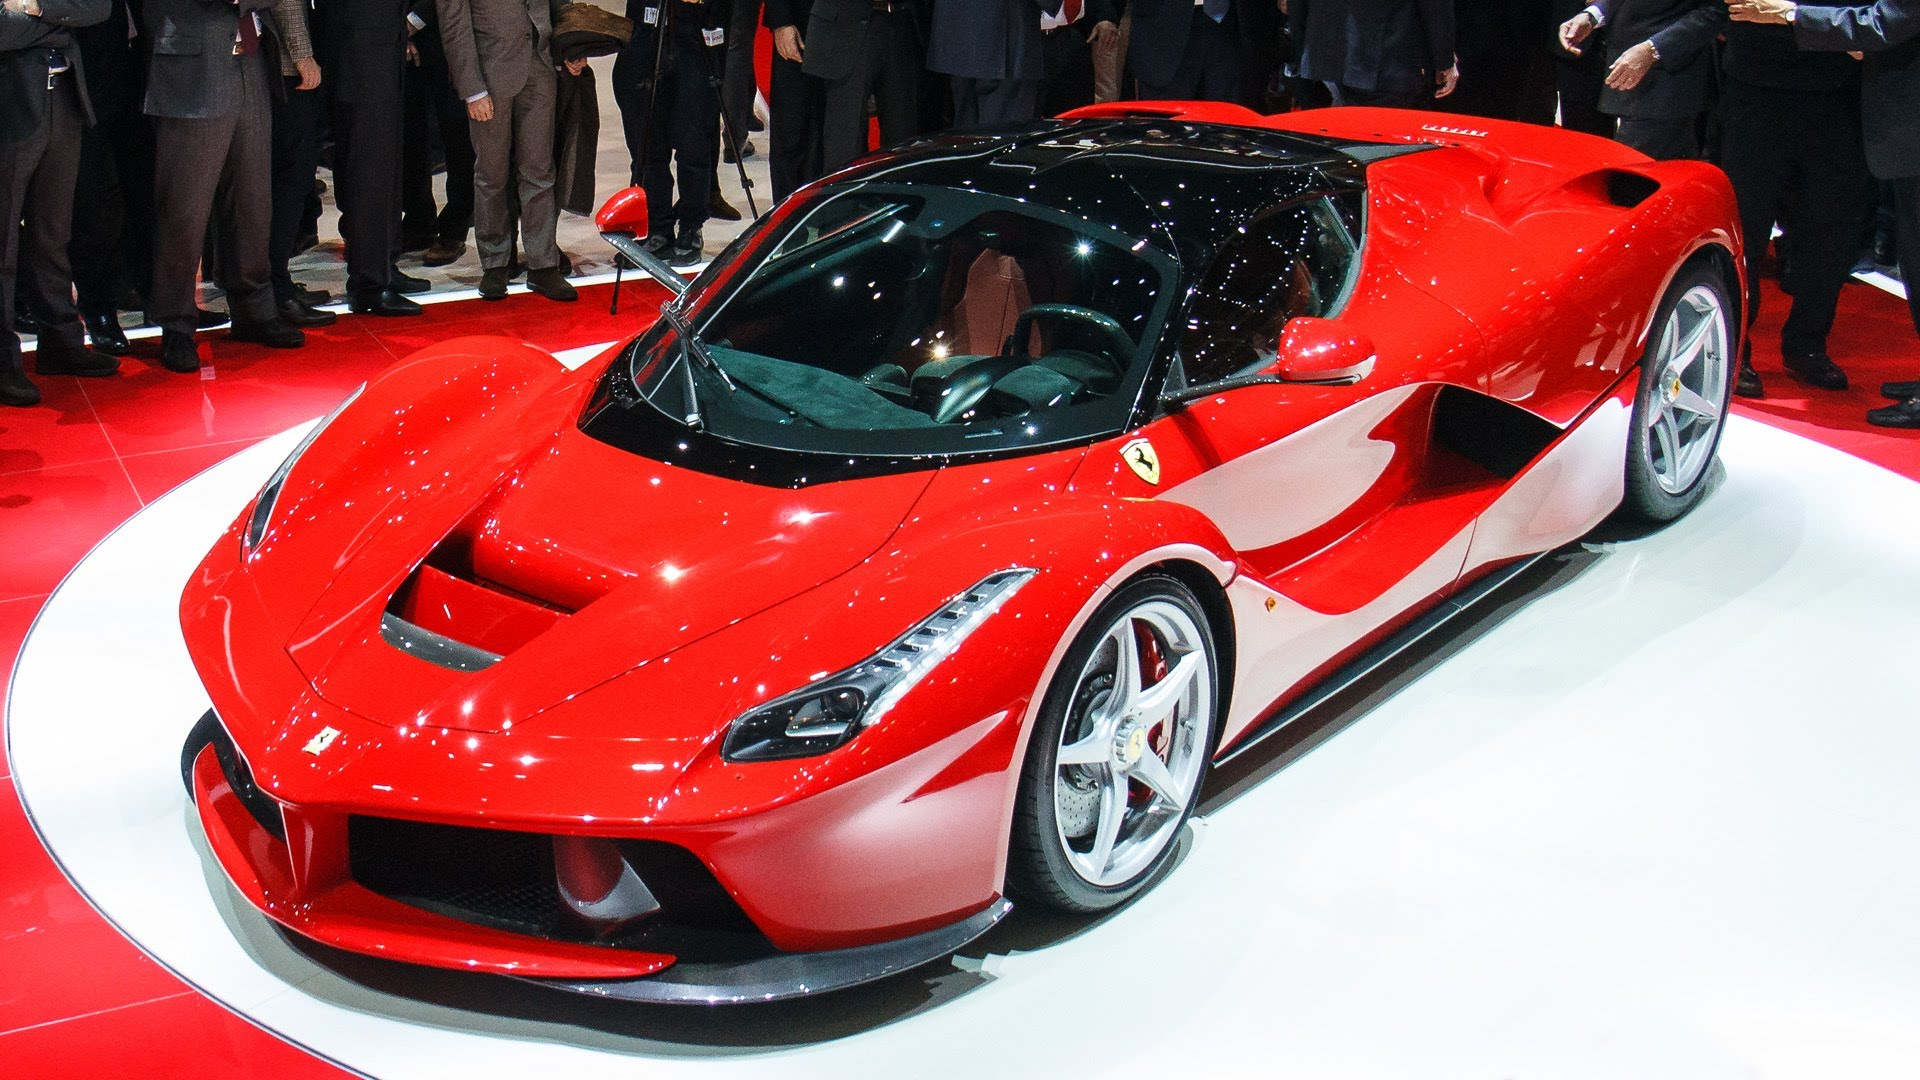 Ferrari To Build One More LaFerrari To Benefit Italy Earthquake Victims